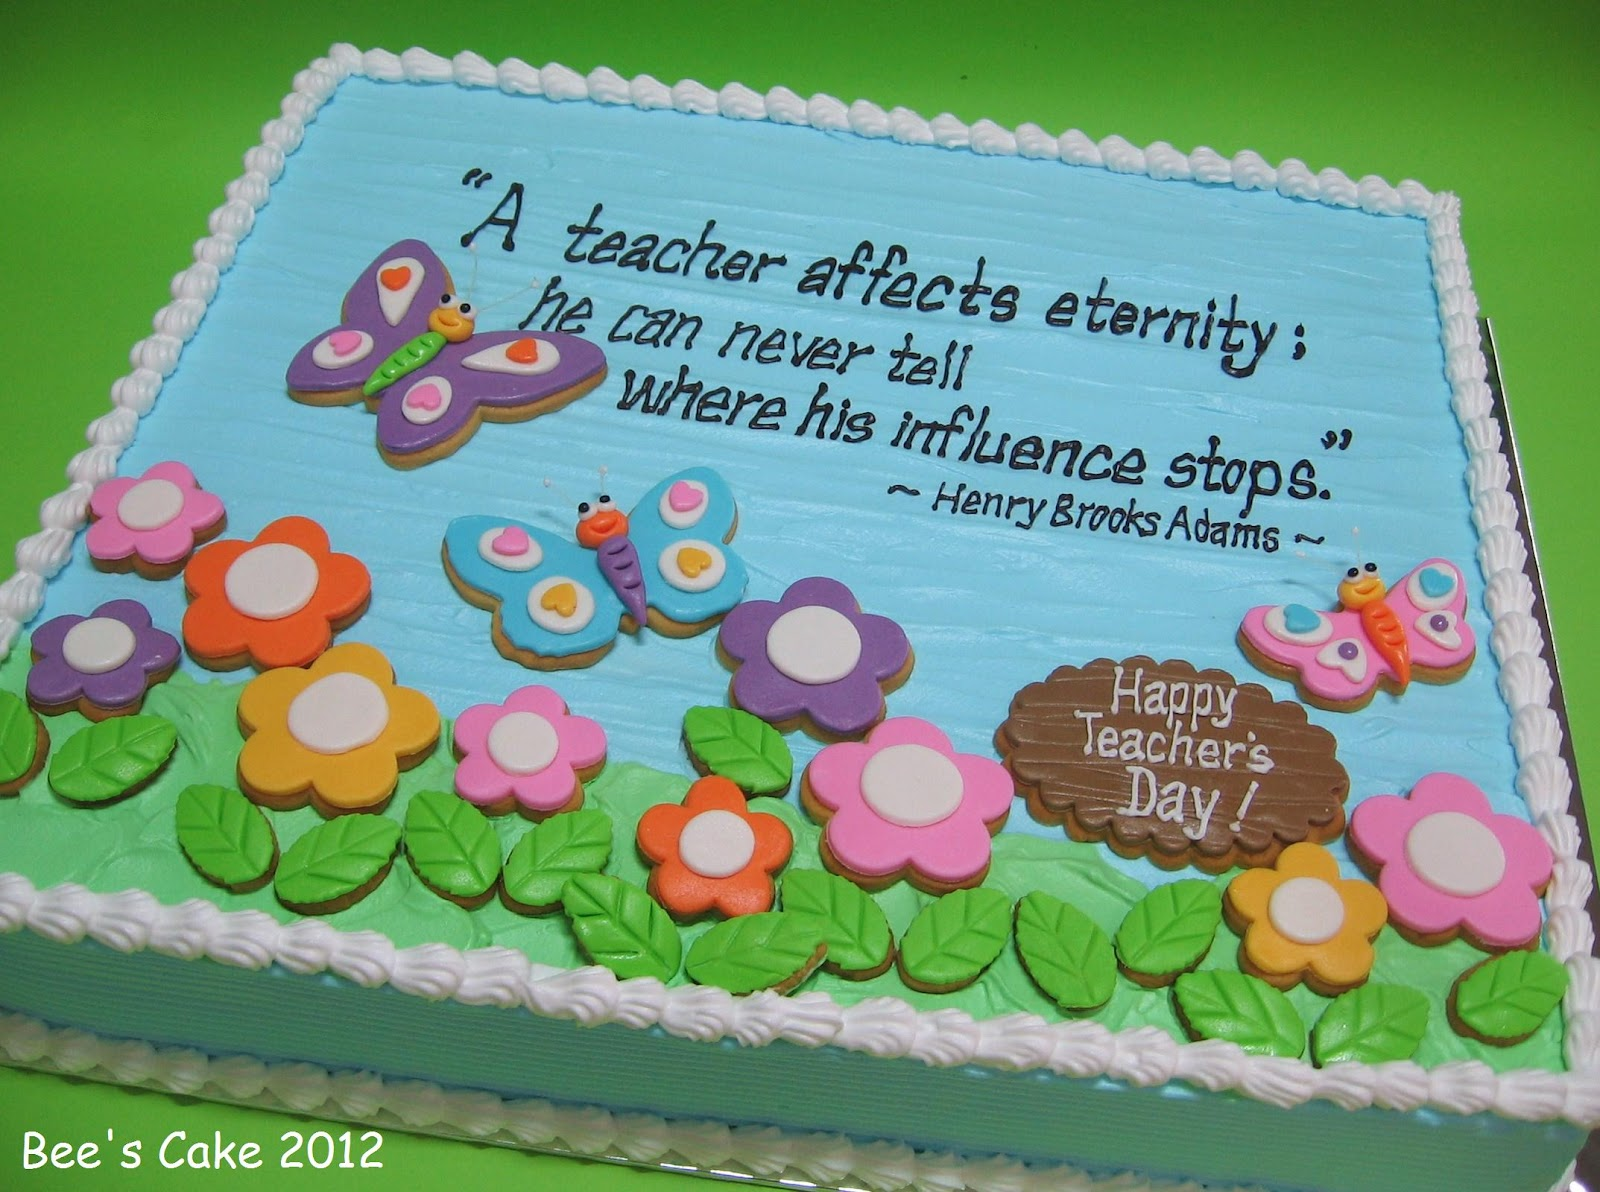 Cake Designs For Teachers Day : Bee s Cake: Happy Teacher s Day